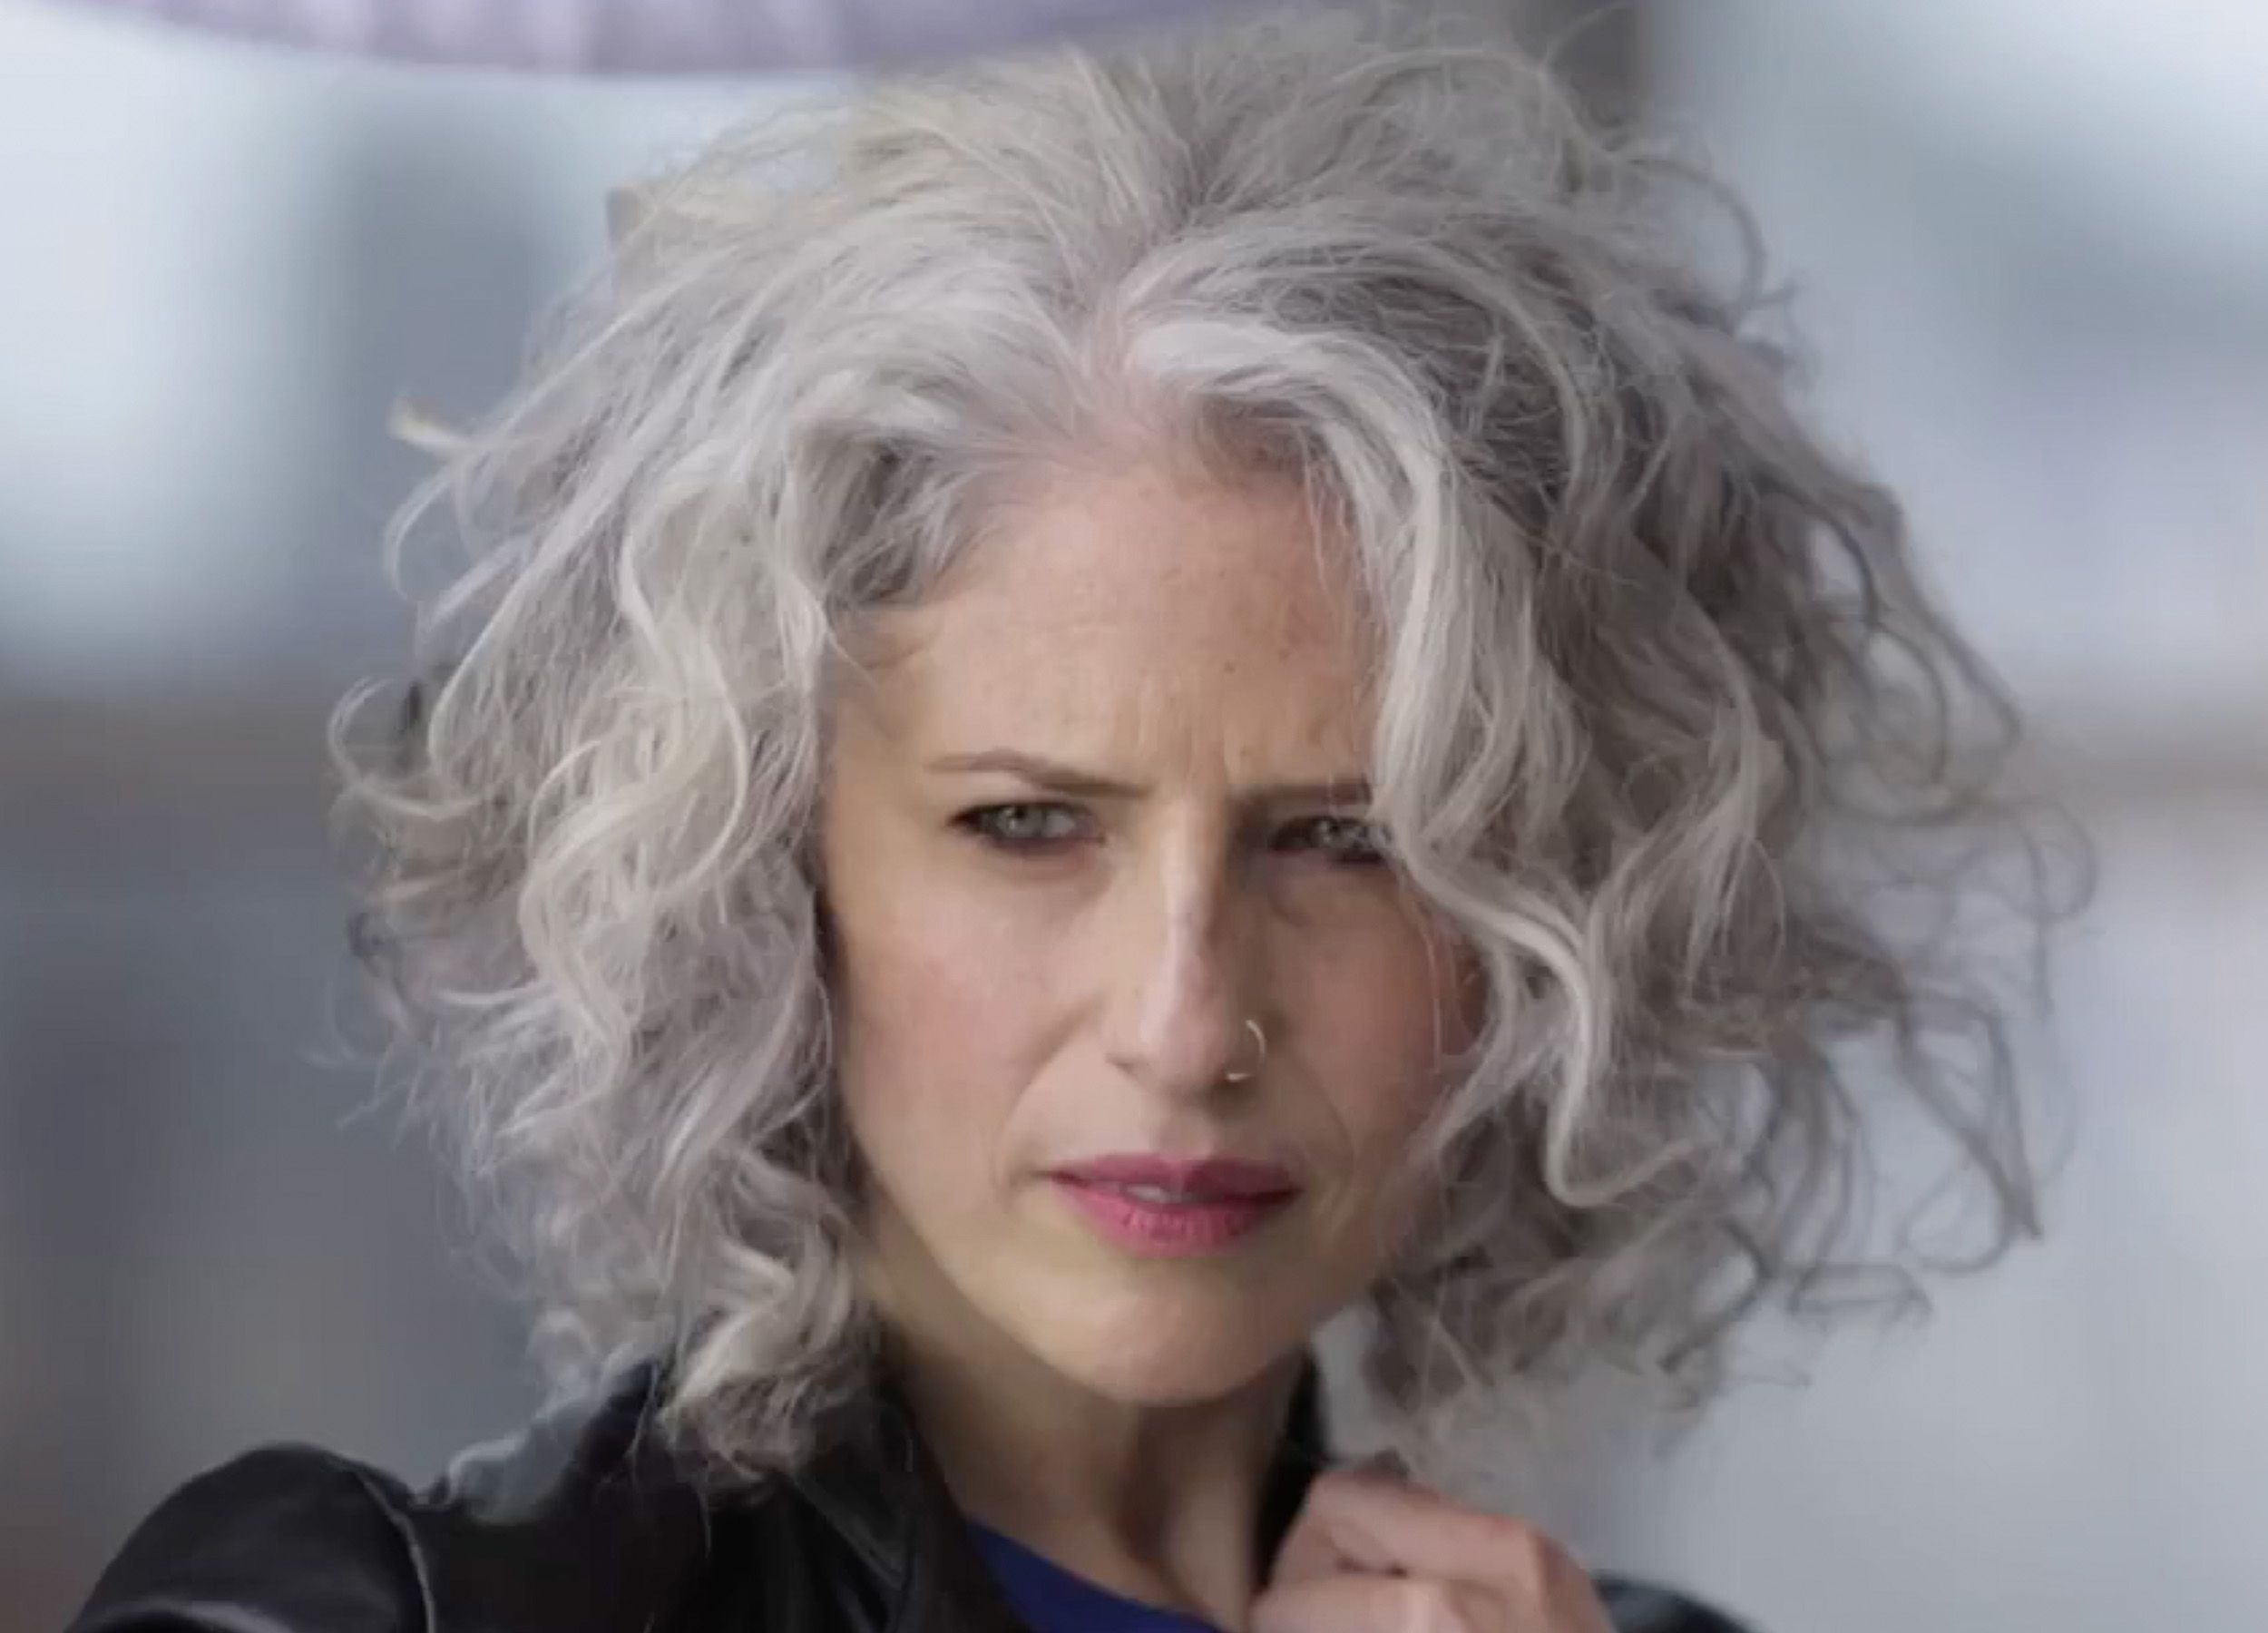 Oh My God This Silver Hair Style Is All My Dreams Come True Soft Curls And Beautiful Grijs Haar Kapsels Kapsels Grijs Krullend Haar Kapsel Voor Krullend Haar